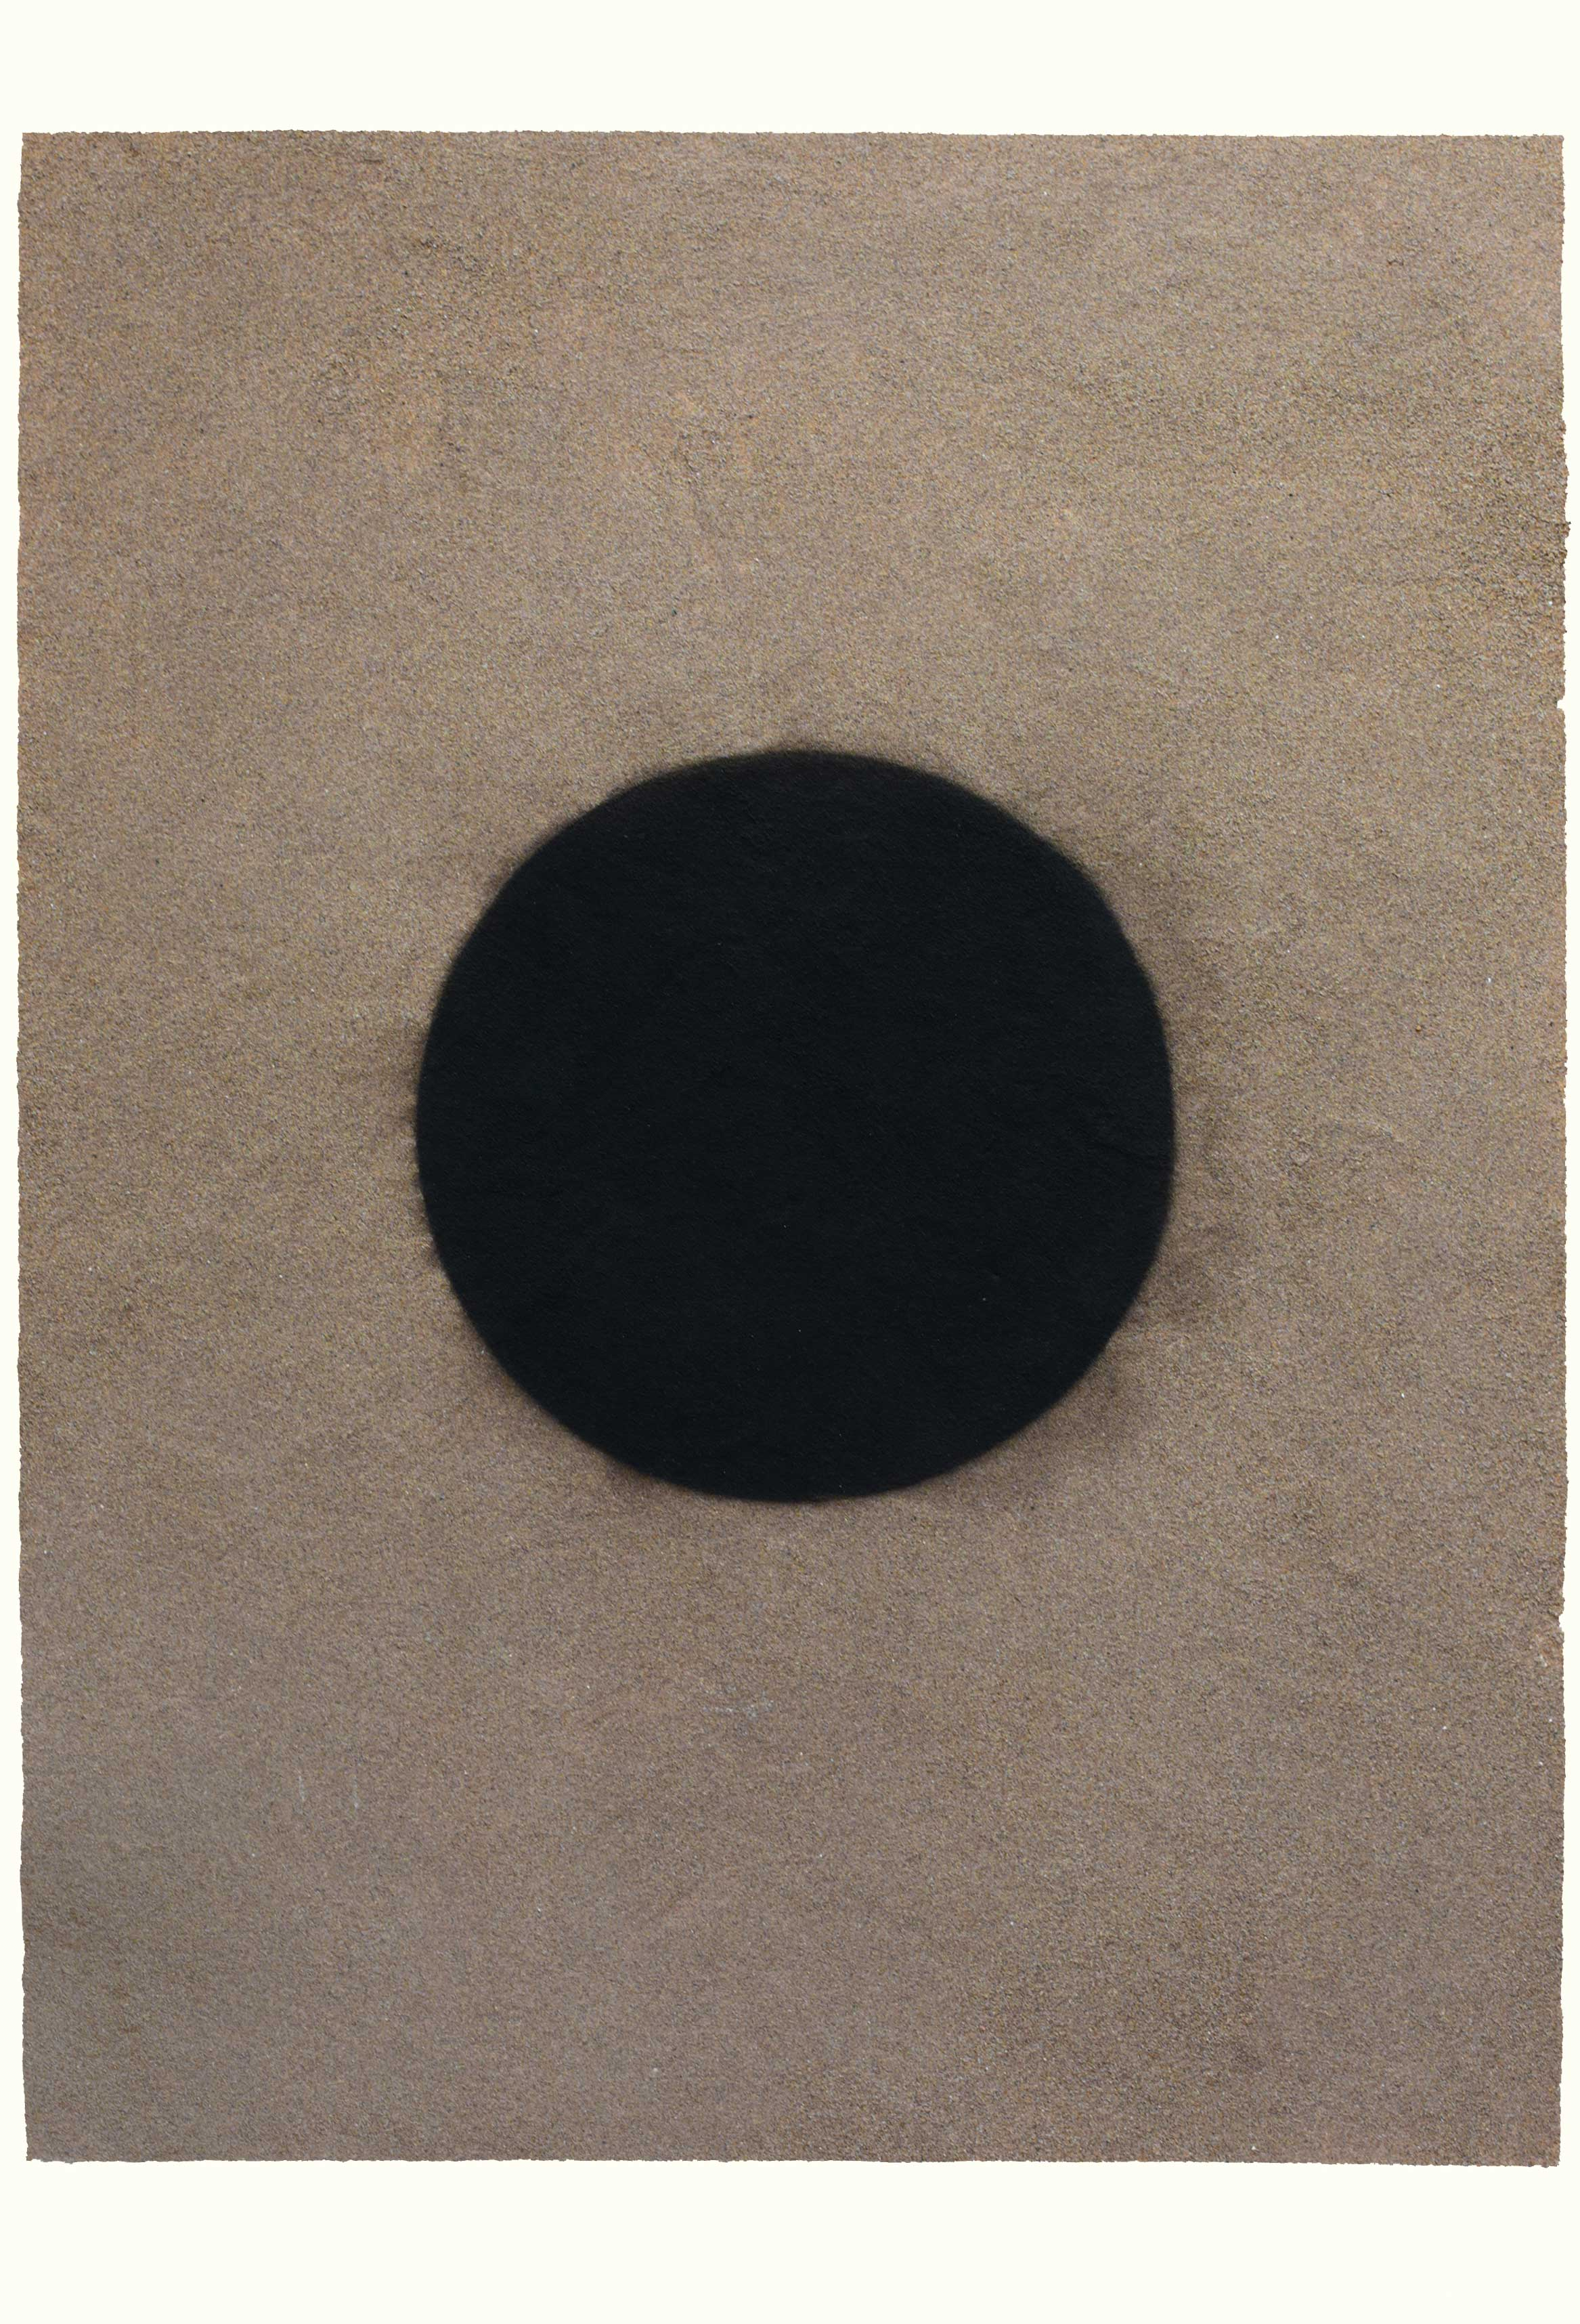 CIRCULAR PORTAL (I)  1997  carbon deposit and silver sand on paper  114.4 x 76.3 cm